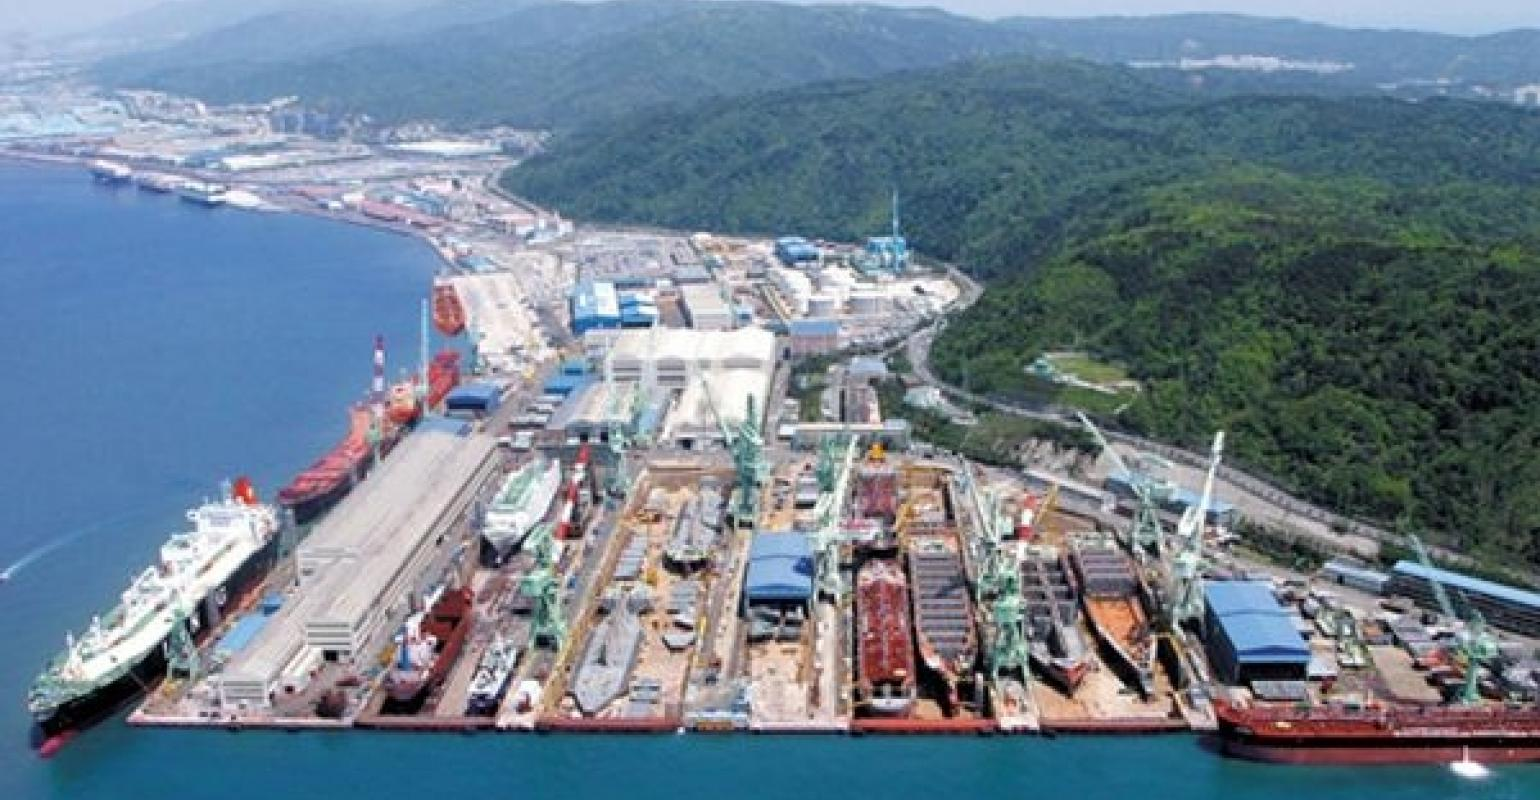 Hyundai Mipo received orders for petrochemical carrier quartet